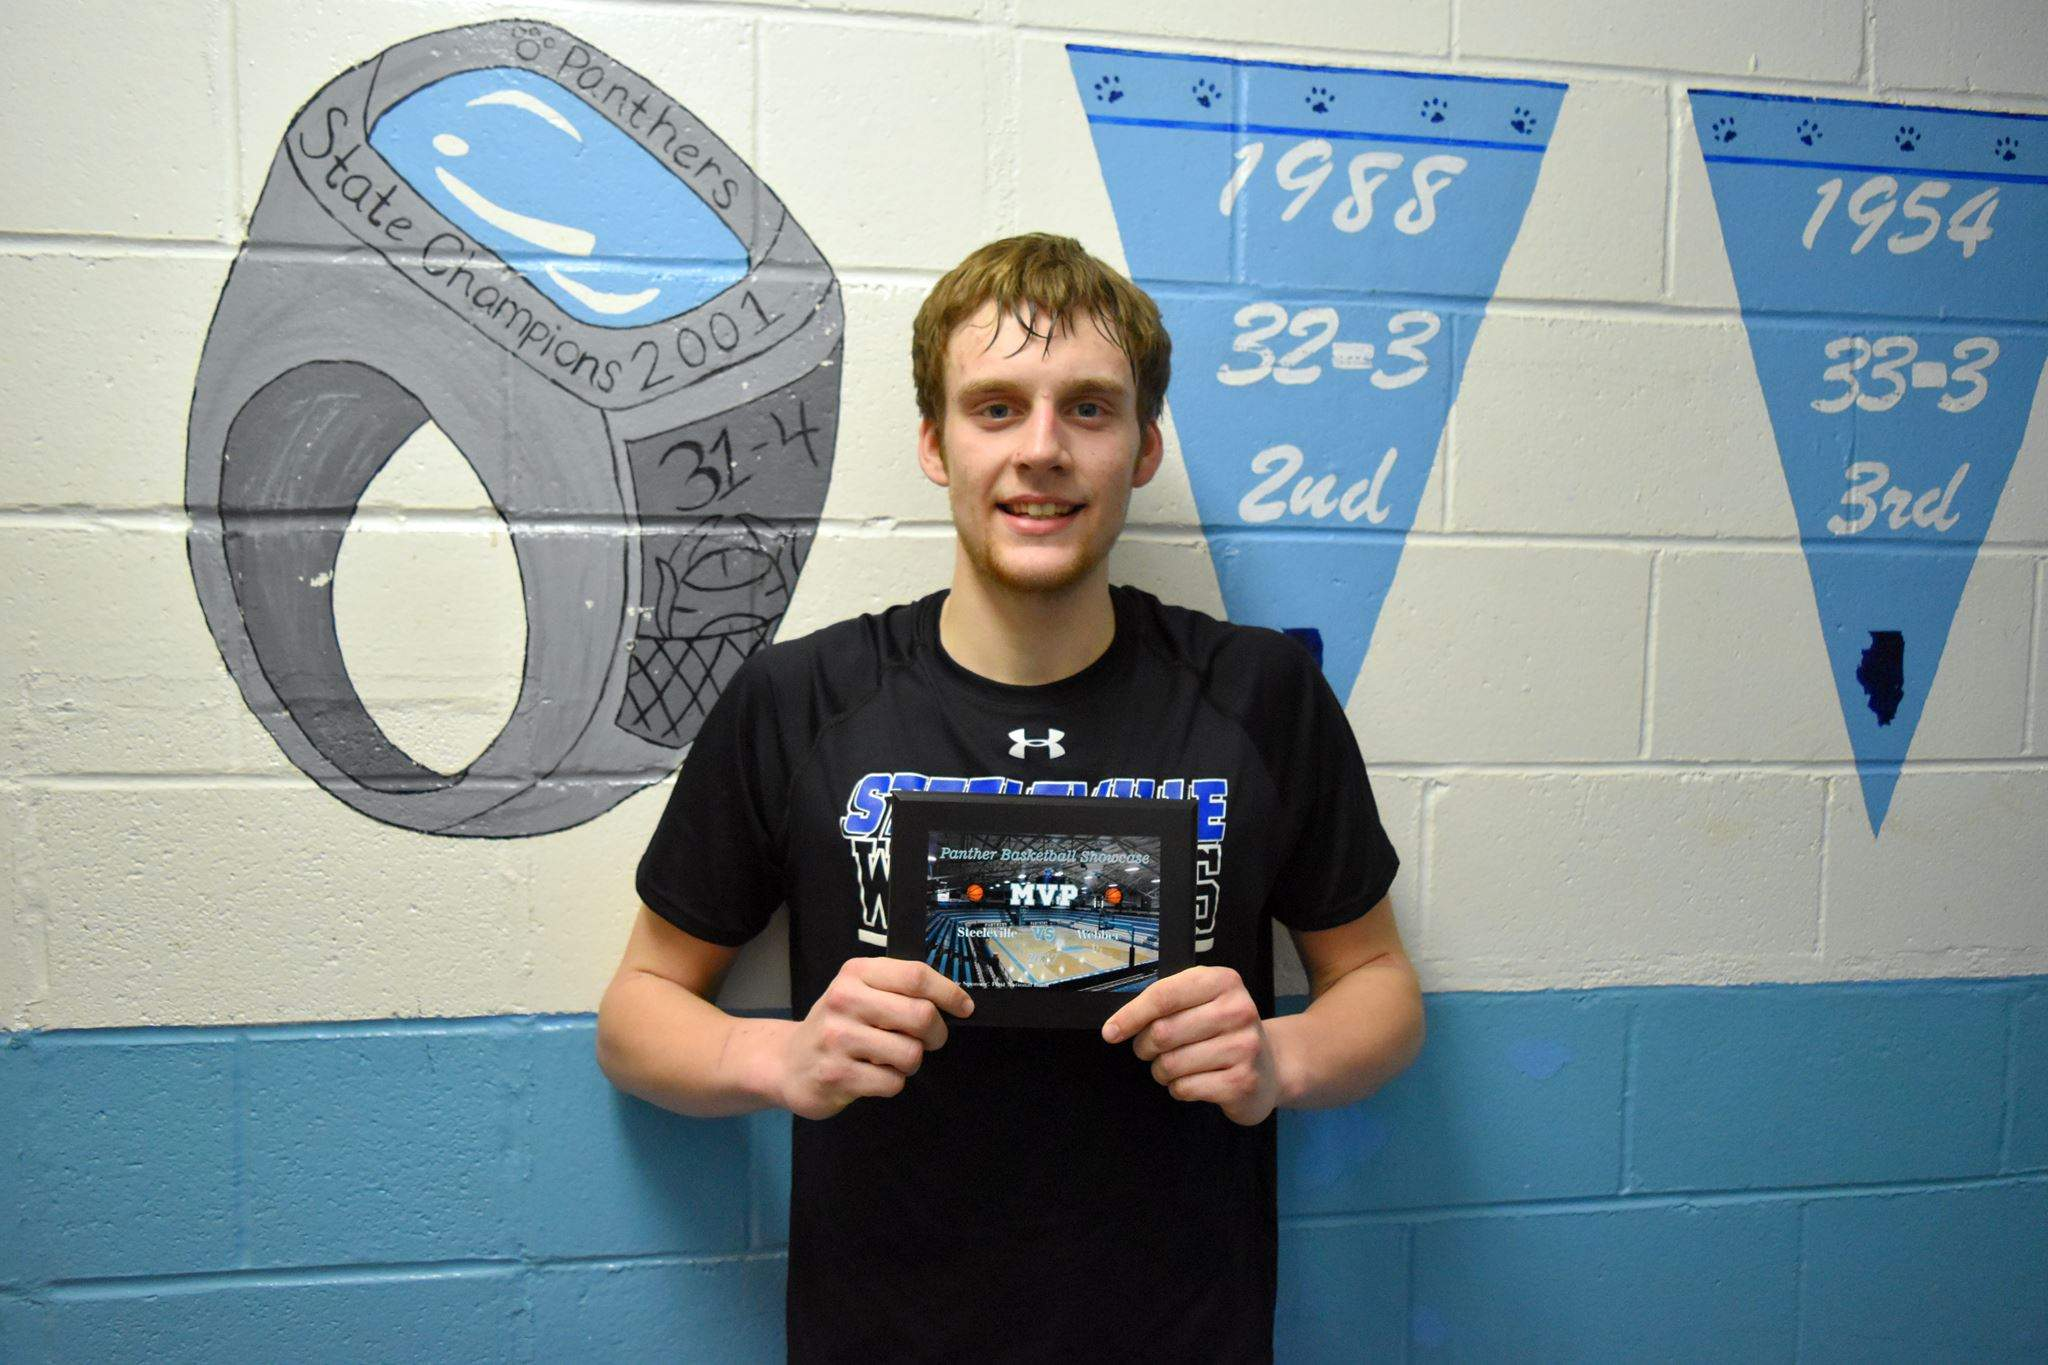 Steeleville High School senior Reid Frederking displays the MVP award he received from the Warriors' game against Webber Township in the Panther Basketball Classic in January. Frederking, who scored 30 points at the PBC, has been selected to the John A. Logan All-Star Classic on April 9.